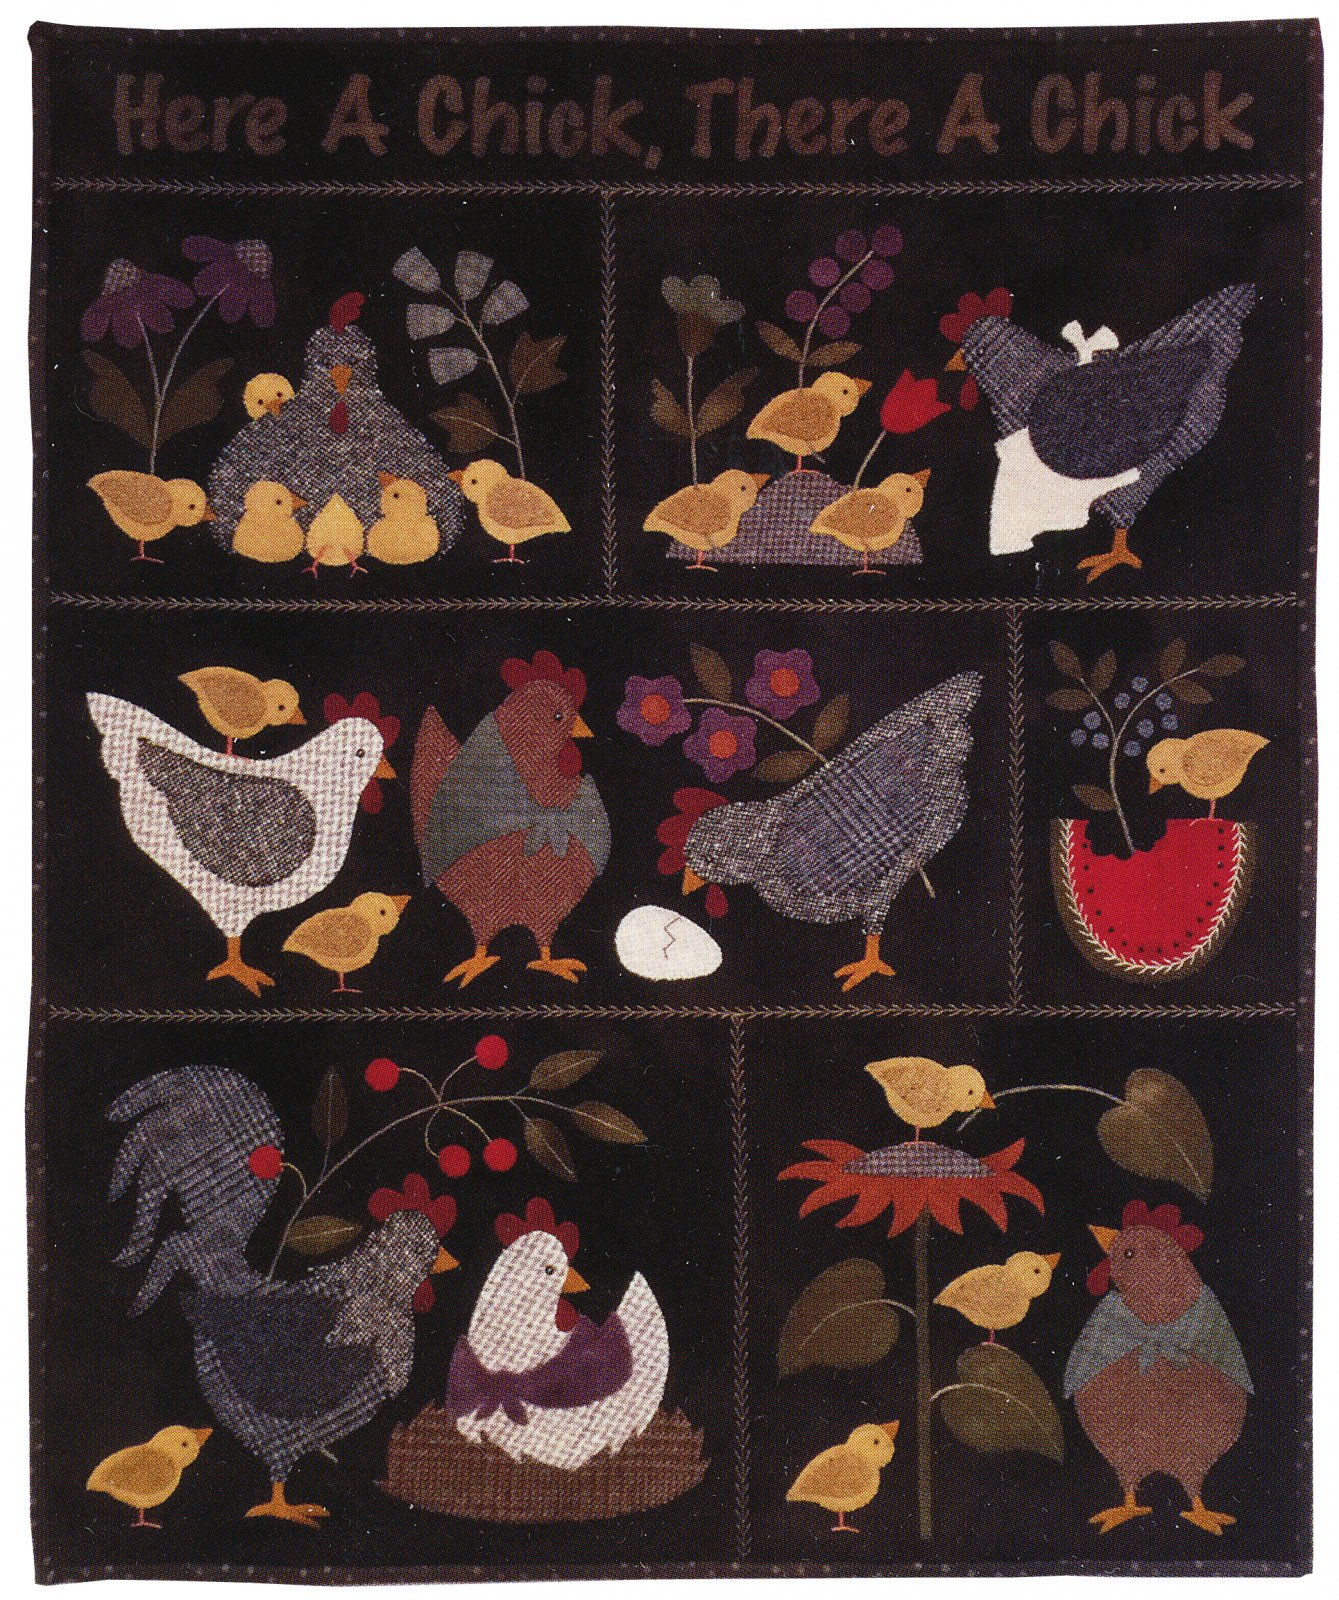 Here A Chick There A Chick Quilt Kit - Dark Version